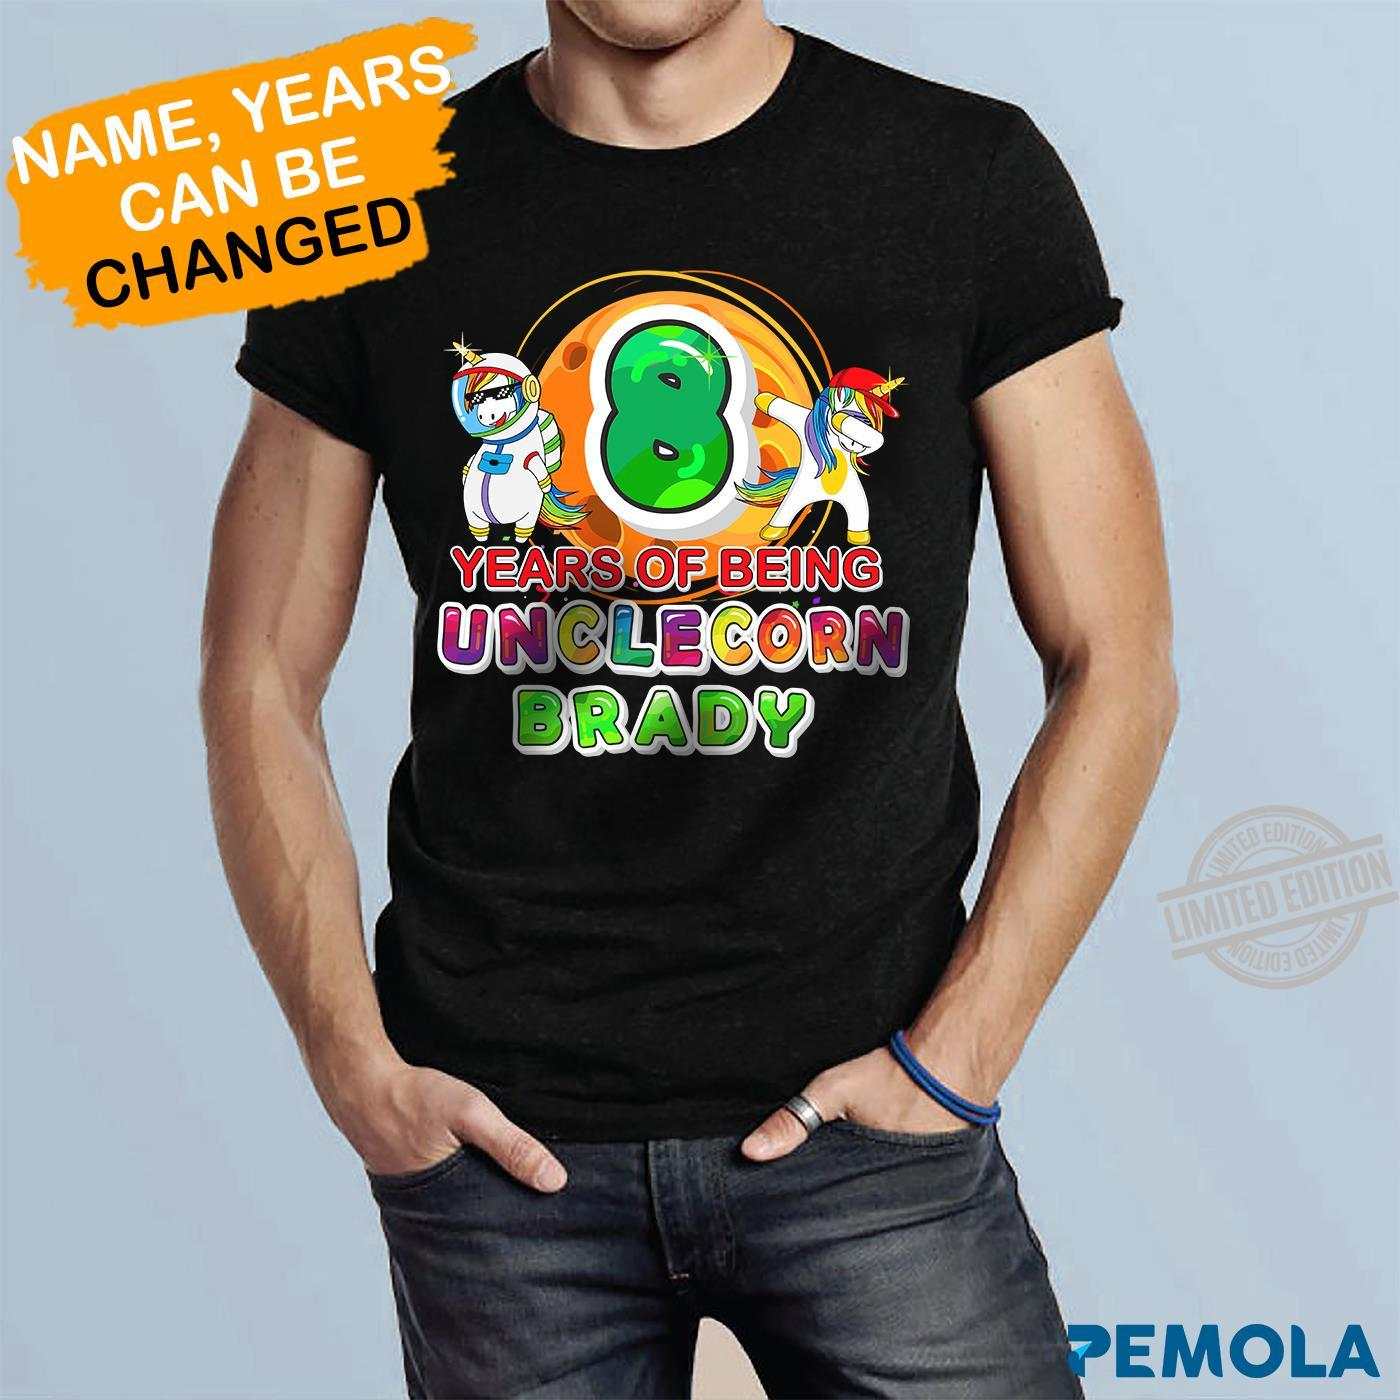 Years Of Being Unclecorn Brady Shirt